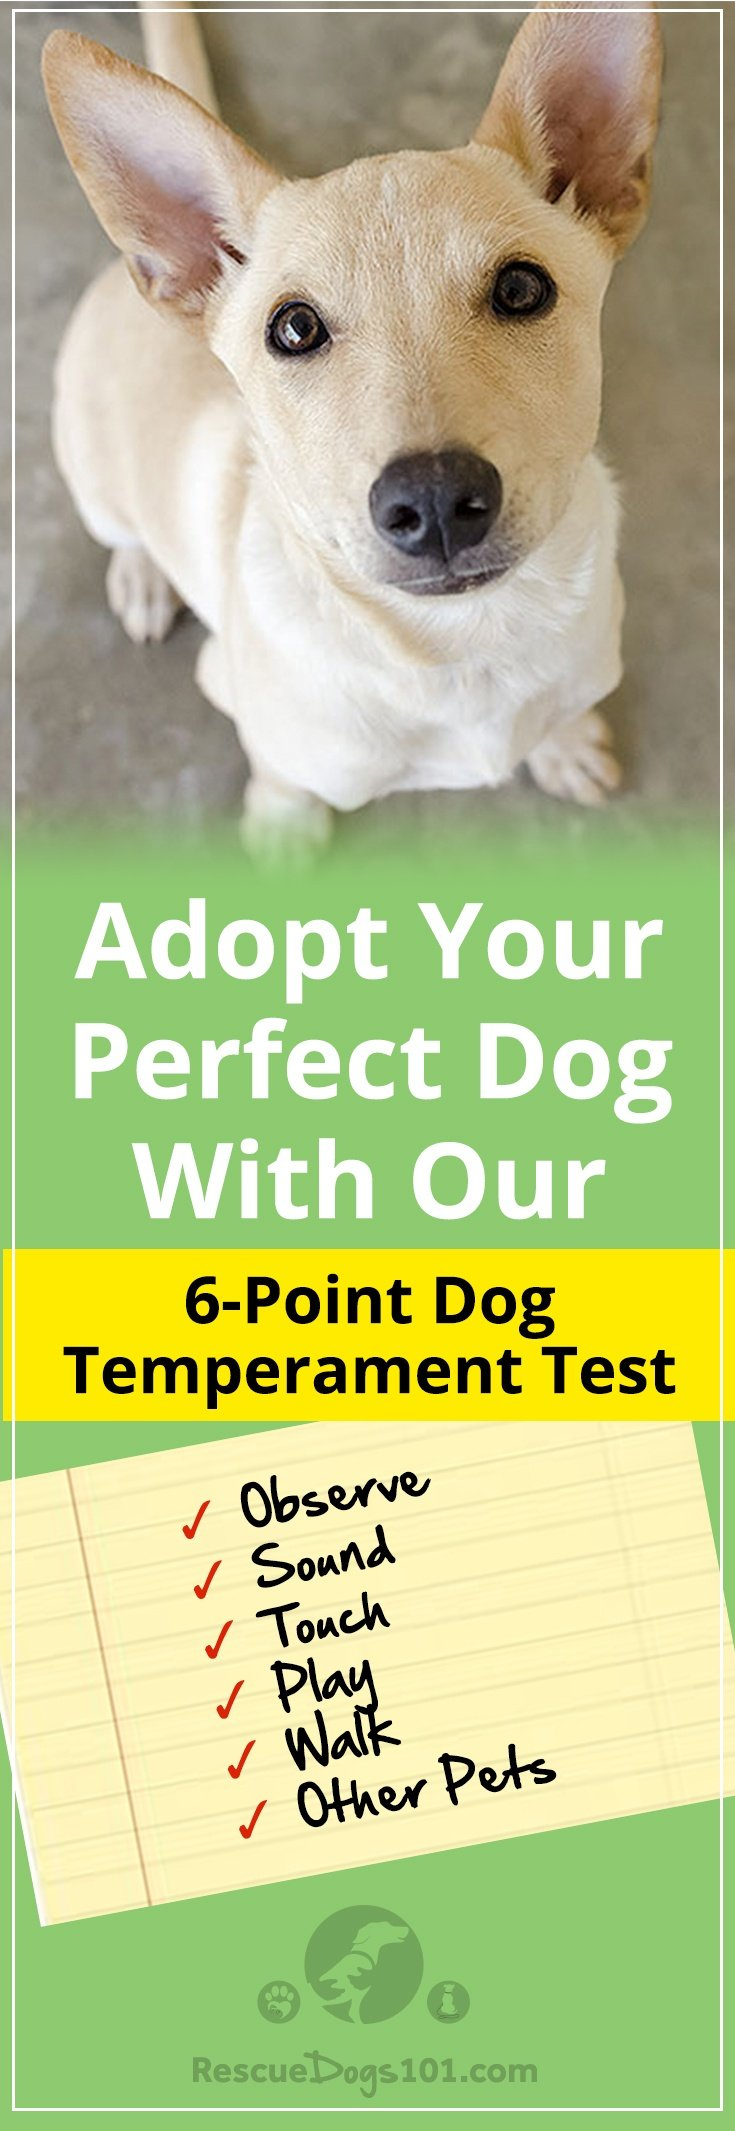 How to Temperament Test a Dog Before You Adopt – Don't judge a book by its cover, or don't judge a dog by its appearance.  Find Your Dog's Personality Type Now! #insidebeauty #adoptdontshop #doglovers #dogadoption #adoptadog #dogstuff #puppylove #rescuedogs101